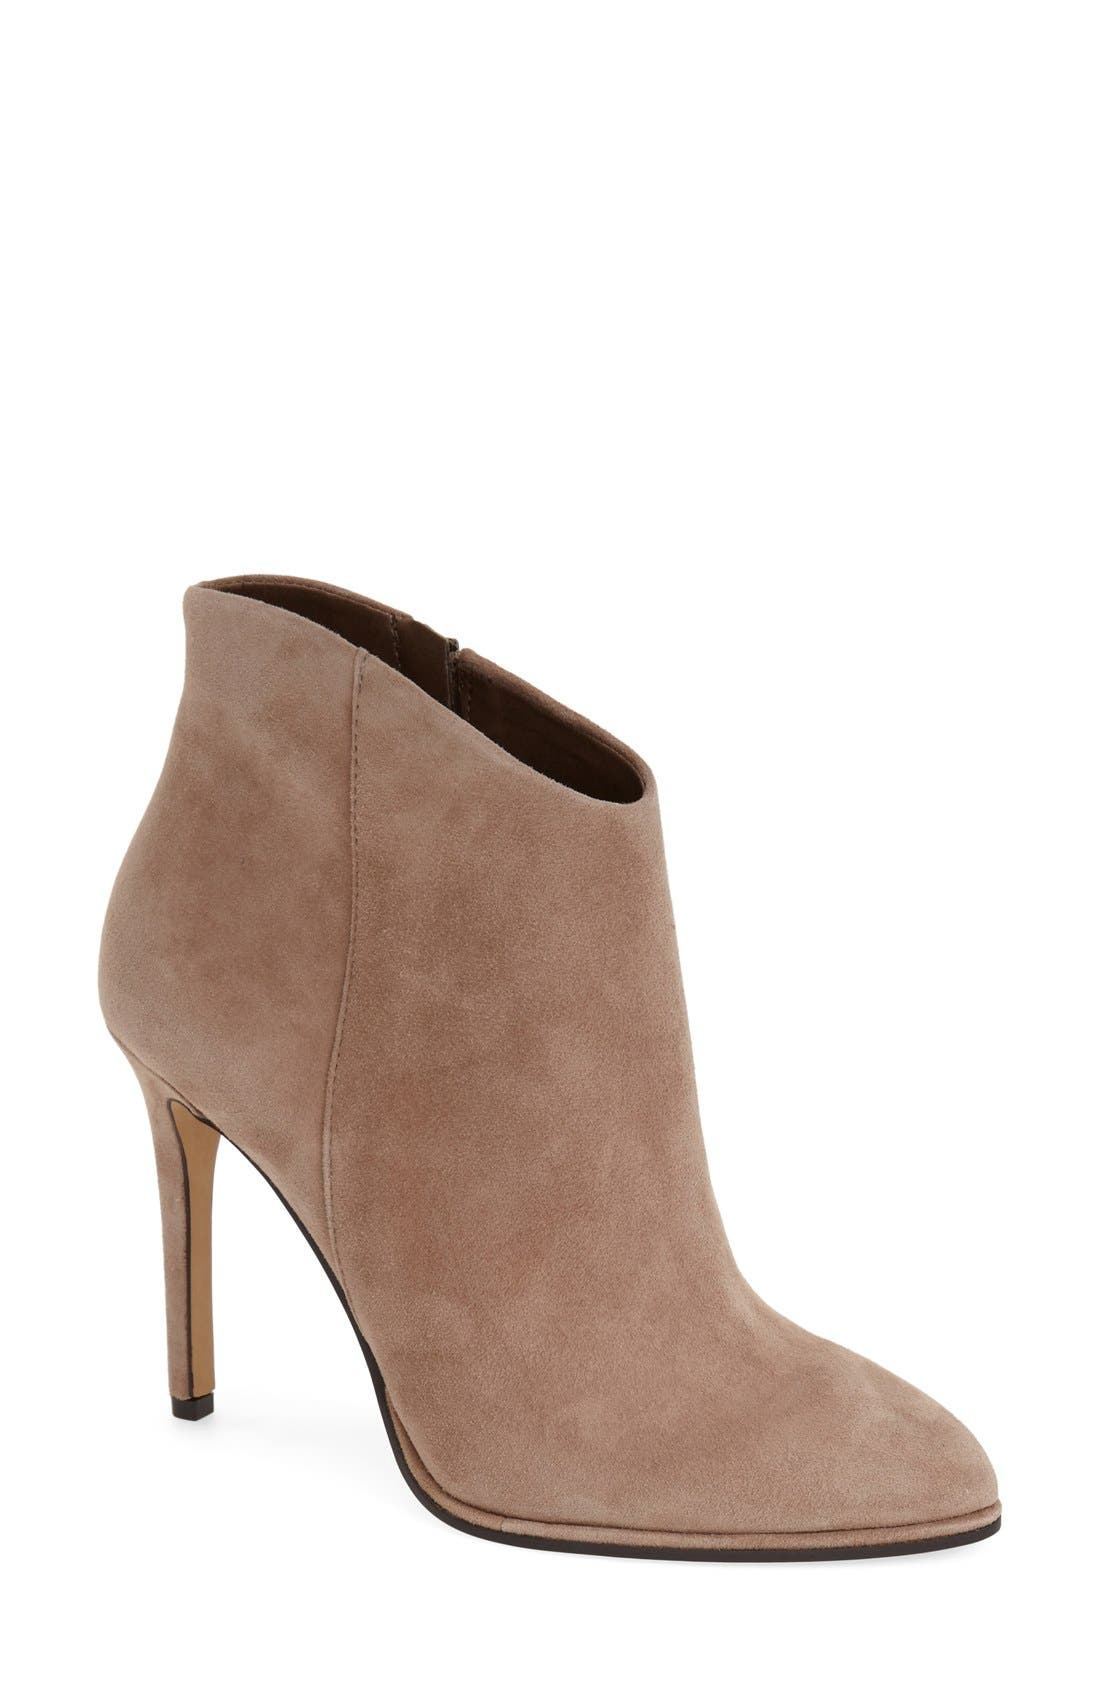 Main Image - Vince Camuto 'Lorenza' Pointy Toe Bootie (Women)